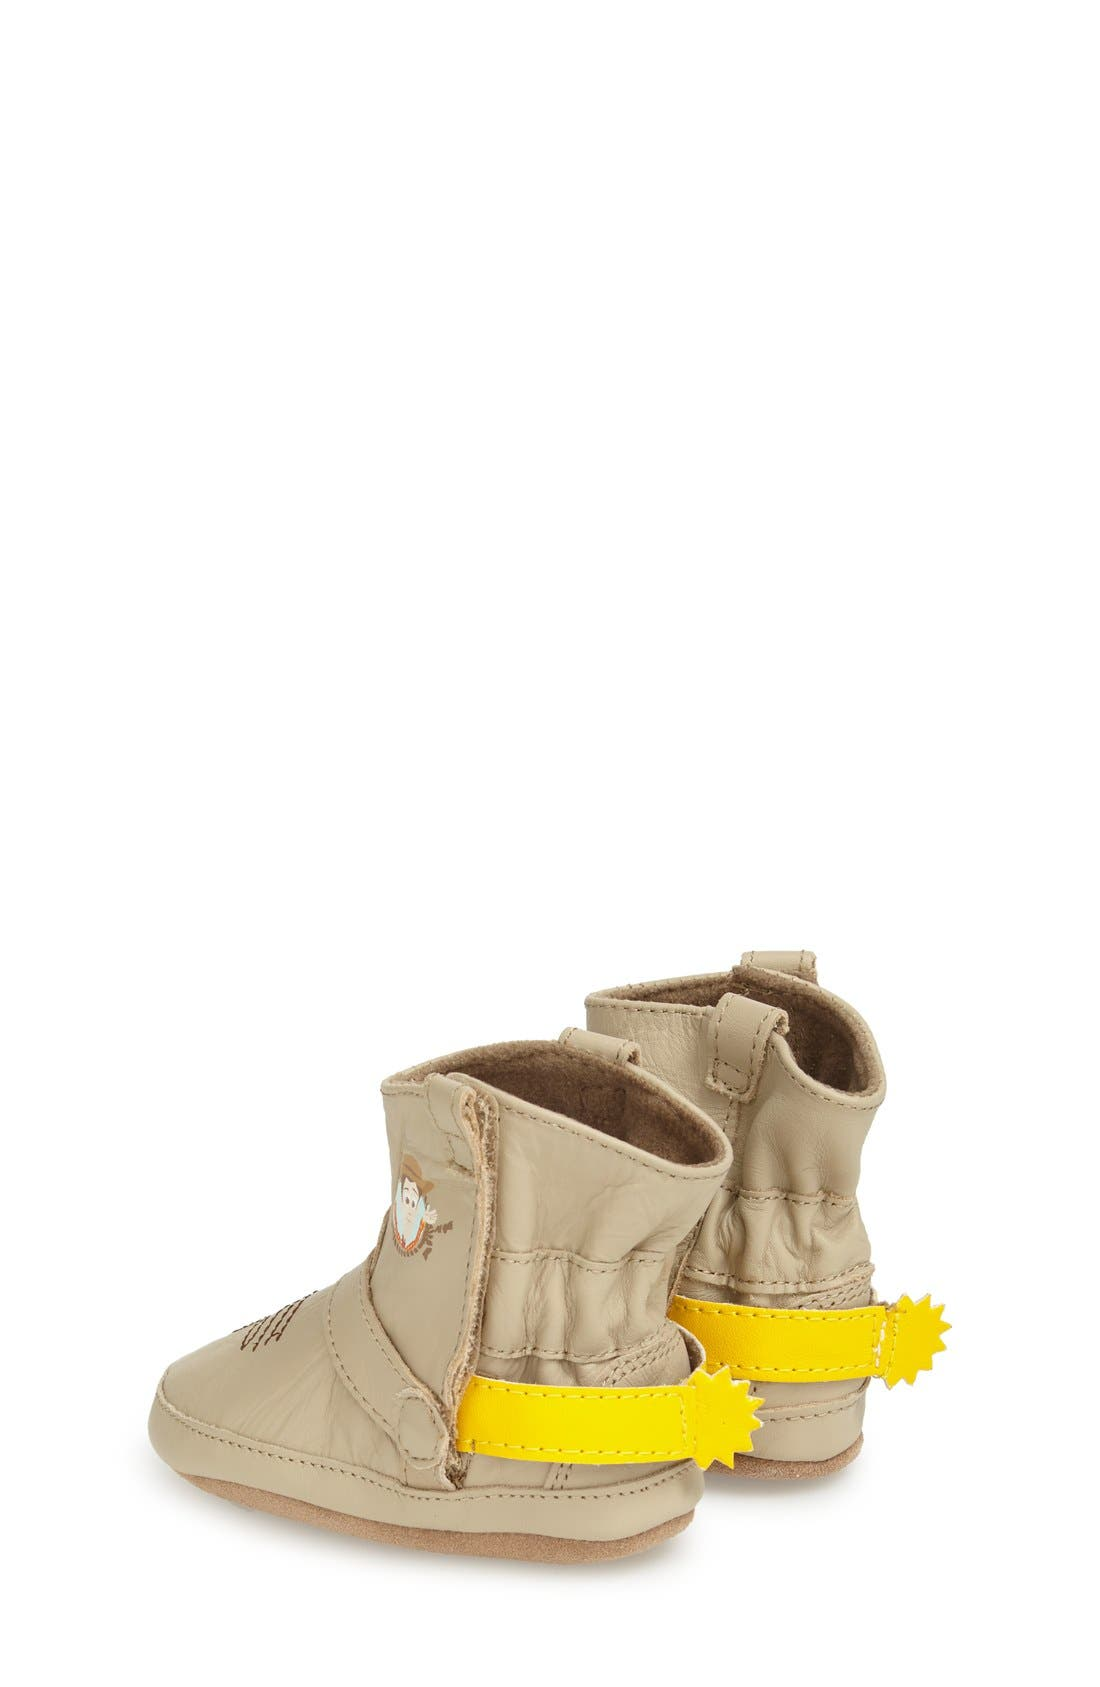 'Disney<sup>®</sup> Woody<sup>®</sup> Bootie' Crib Shoe,                             Alternate thumbnail 2, color,